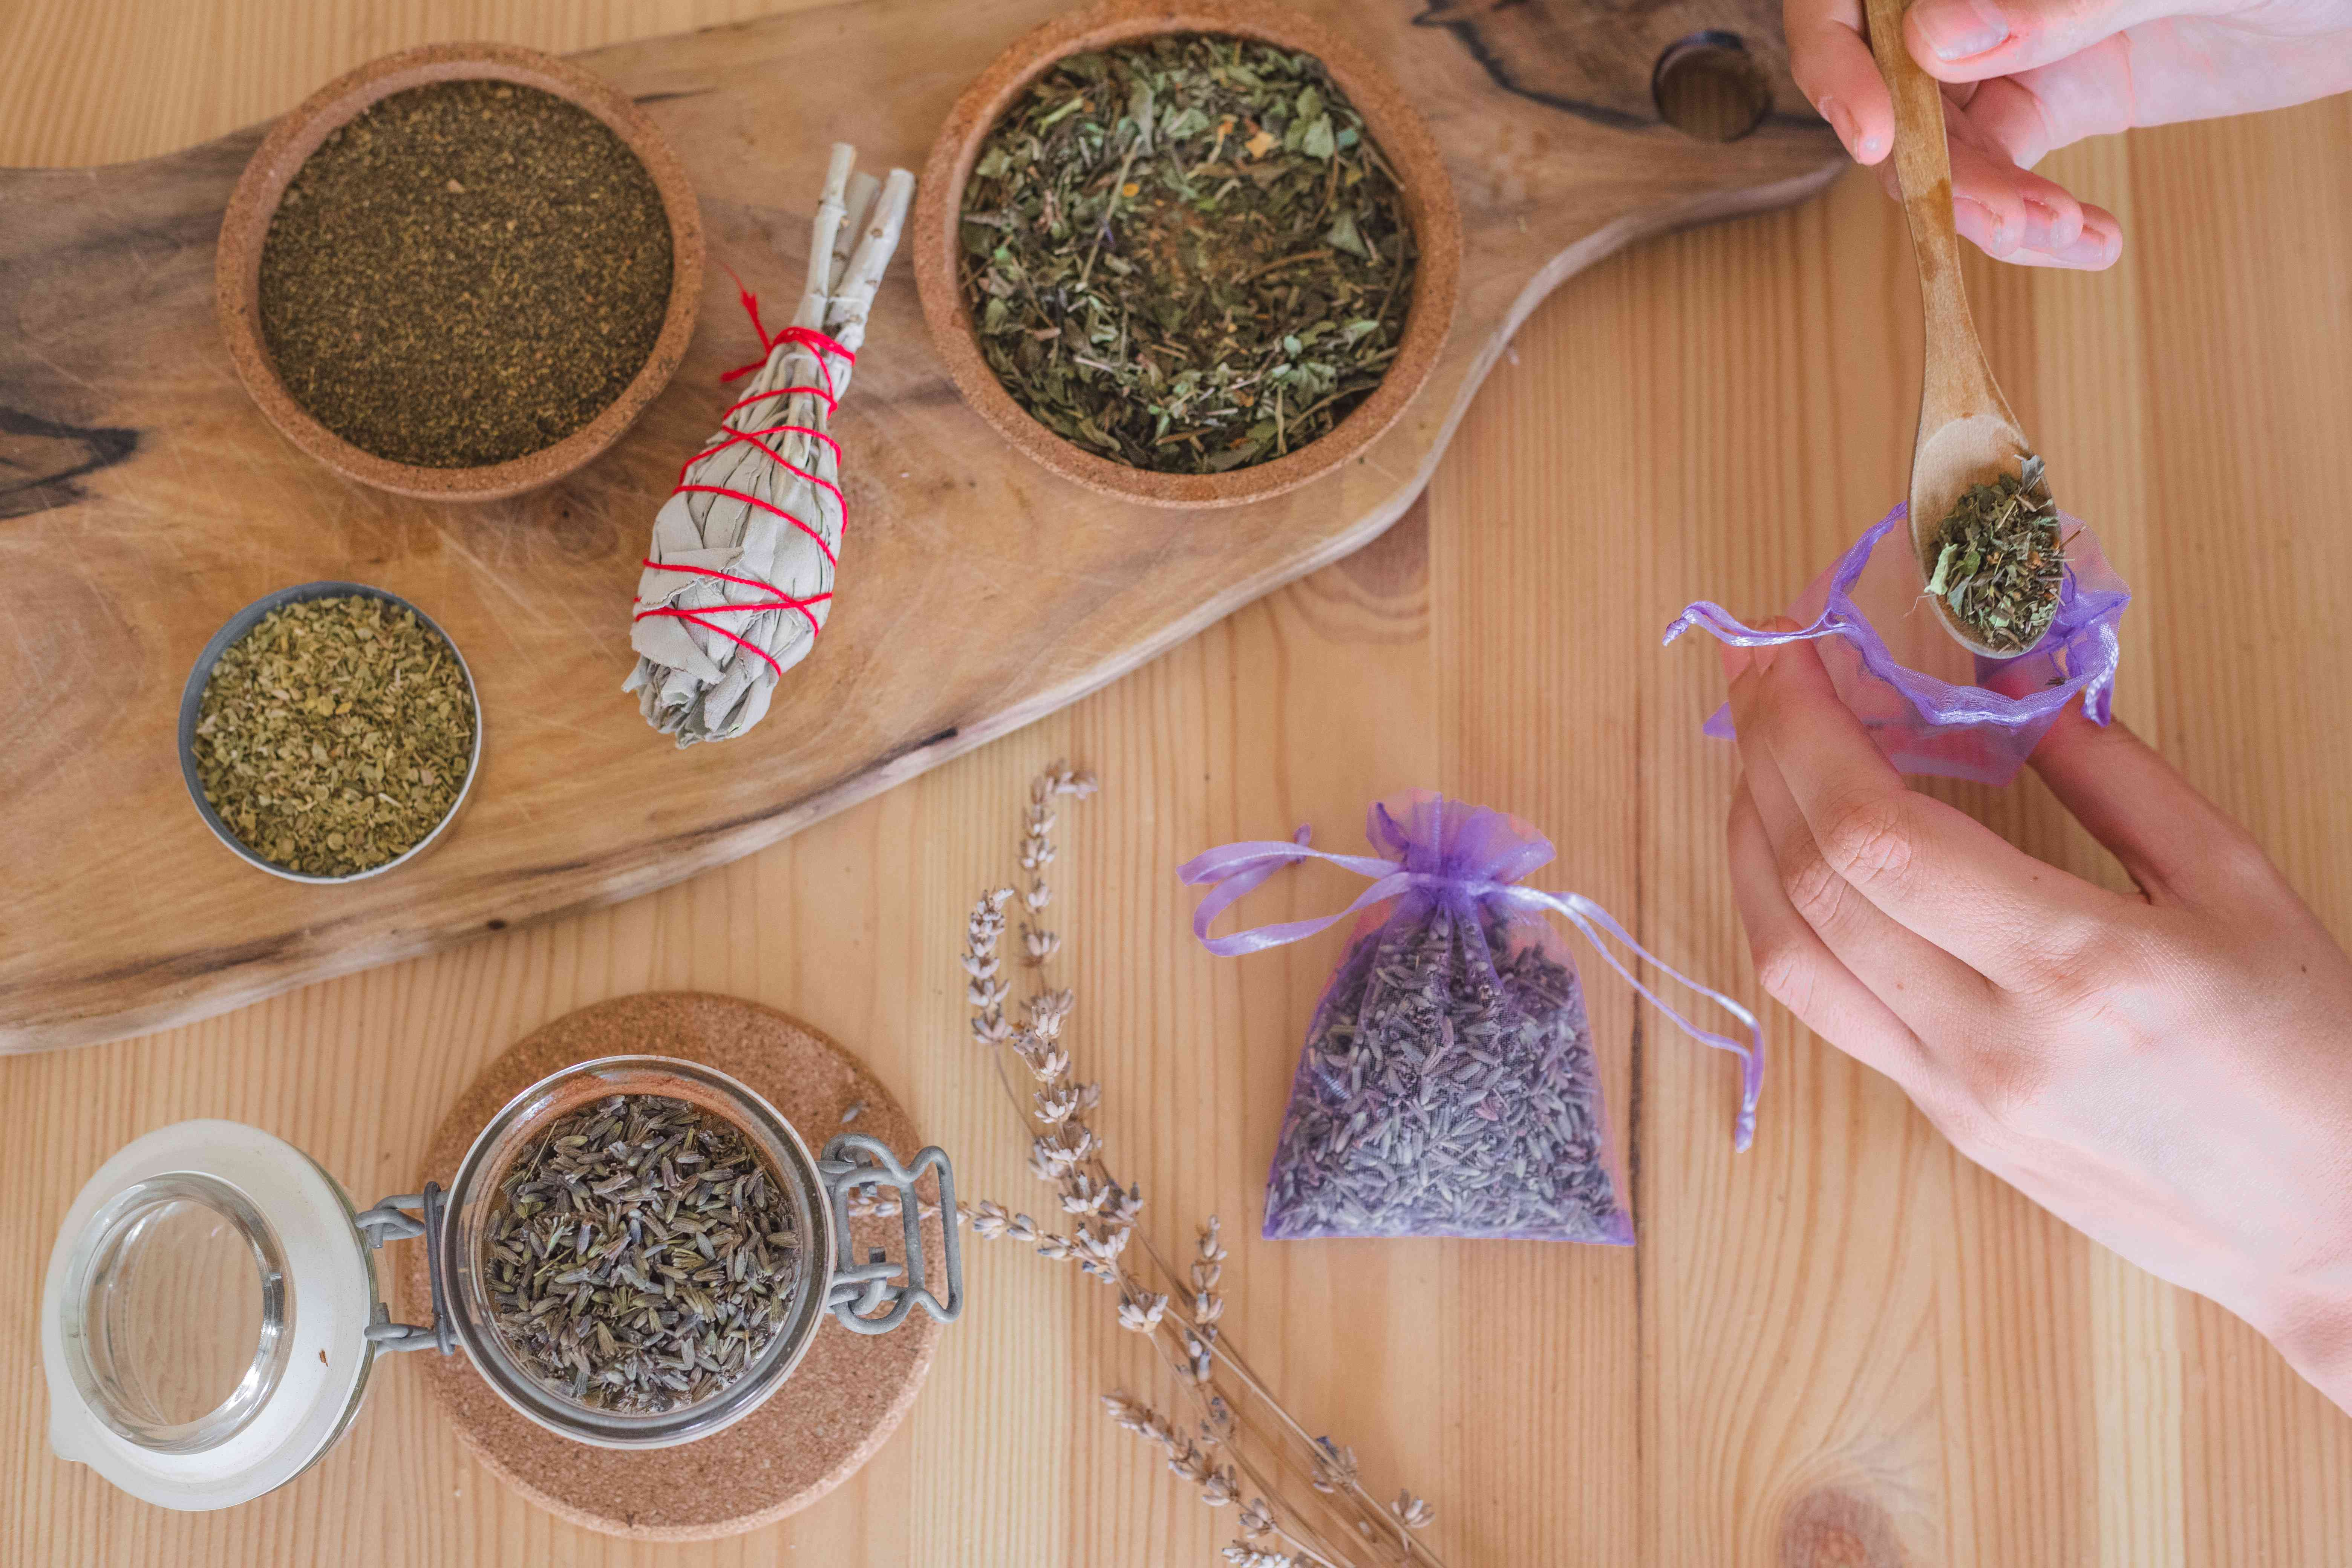 hands make DIY lavender sachets with dried herbs and sage on wooden table